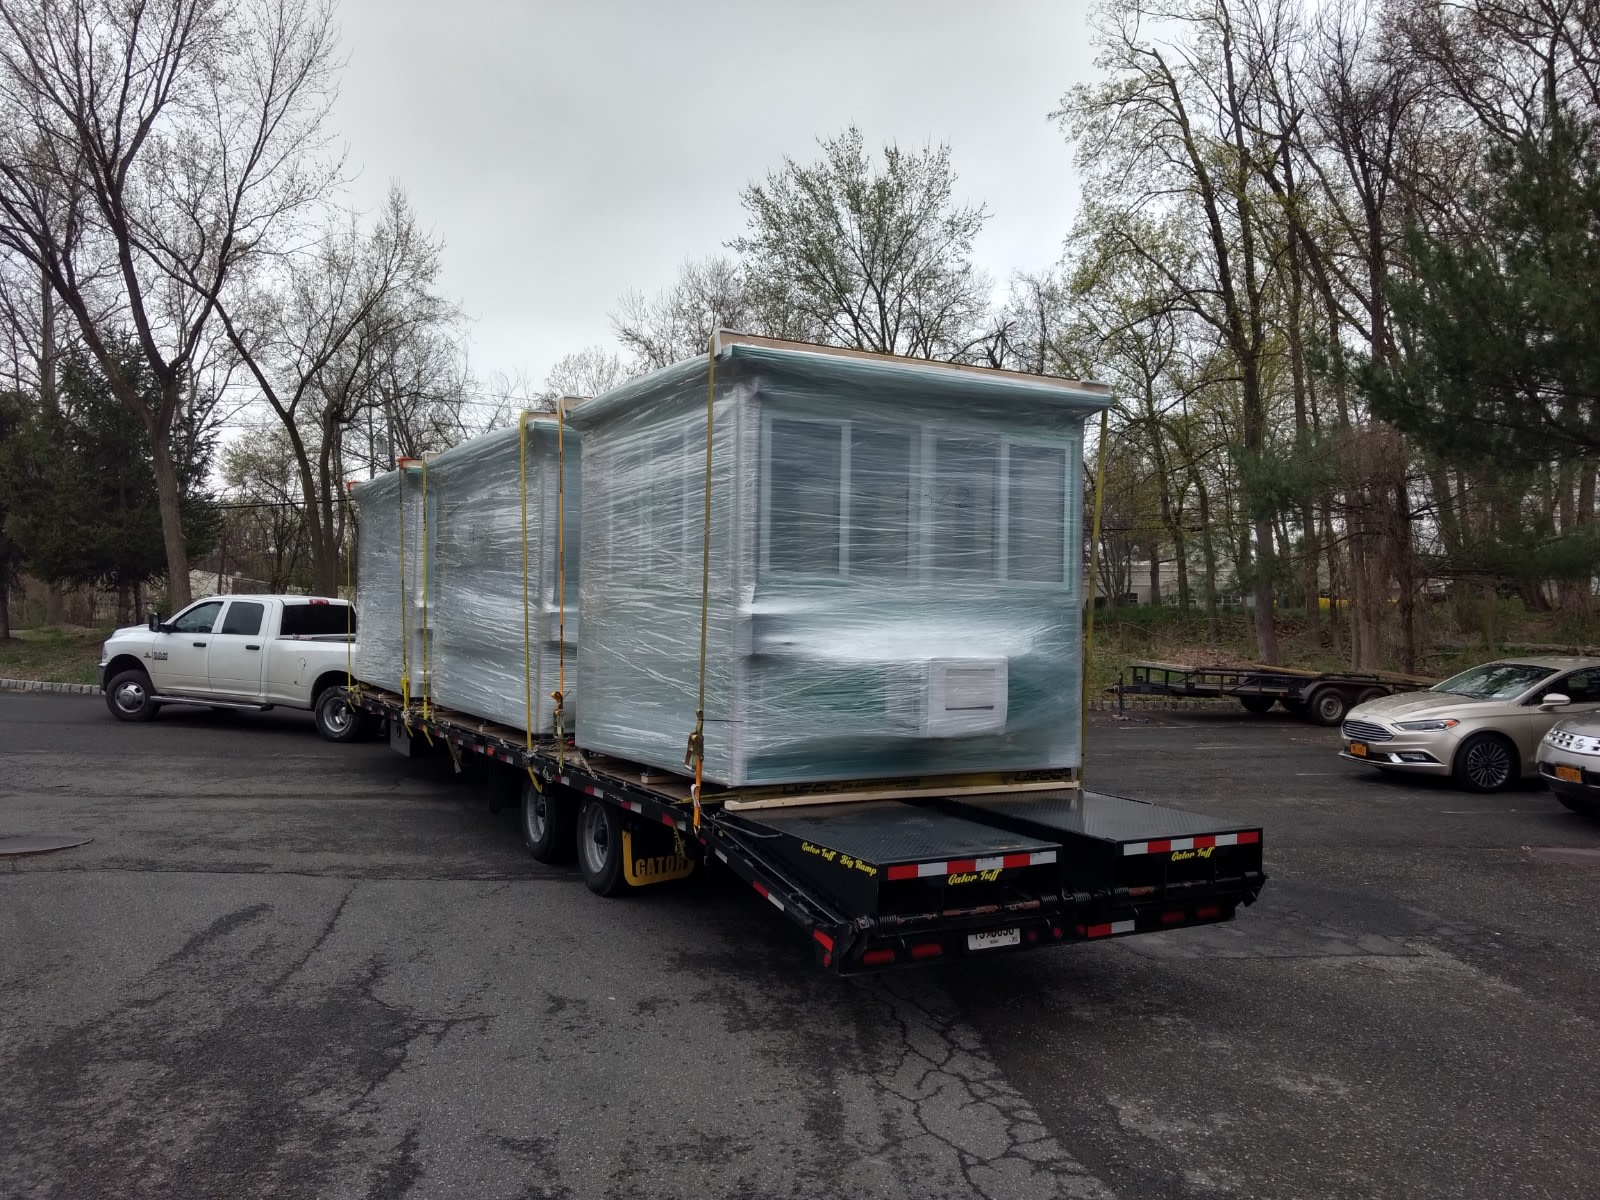 8x10 Security Guard Booths ready for Delivery in Jacksonville, FL with Custom Exterior Color